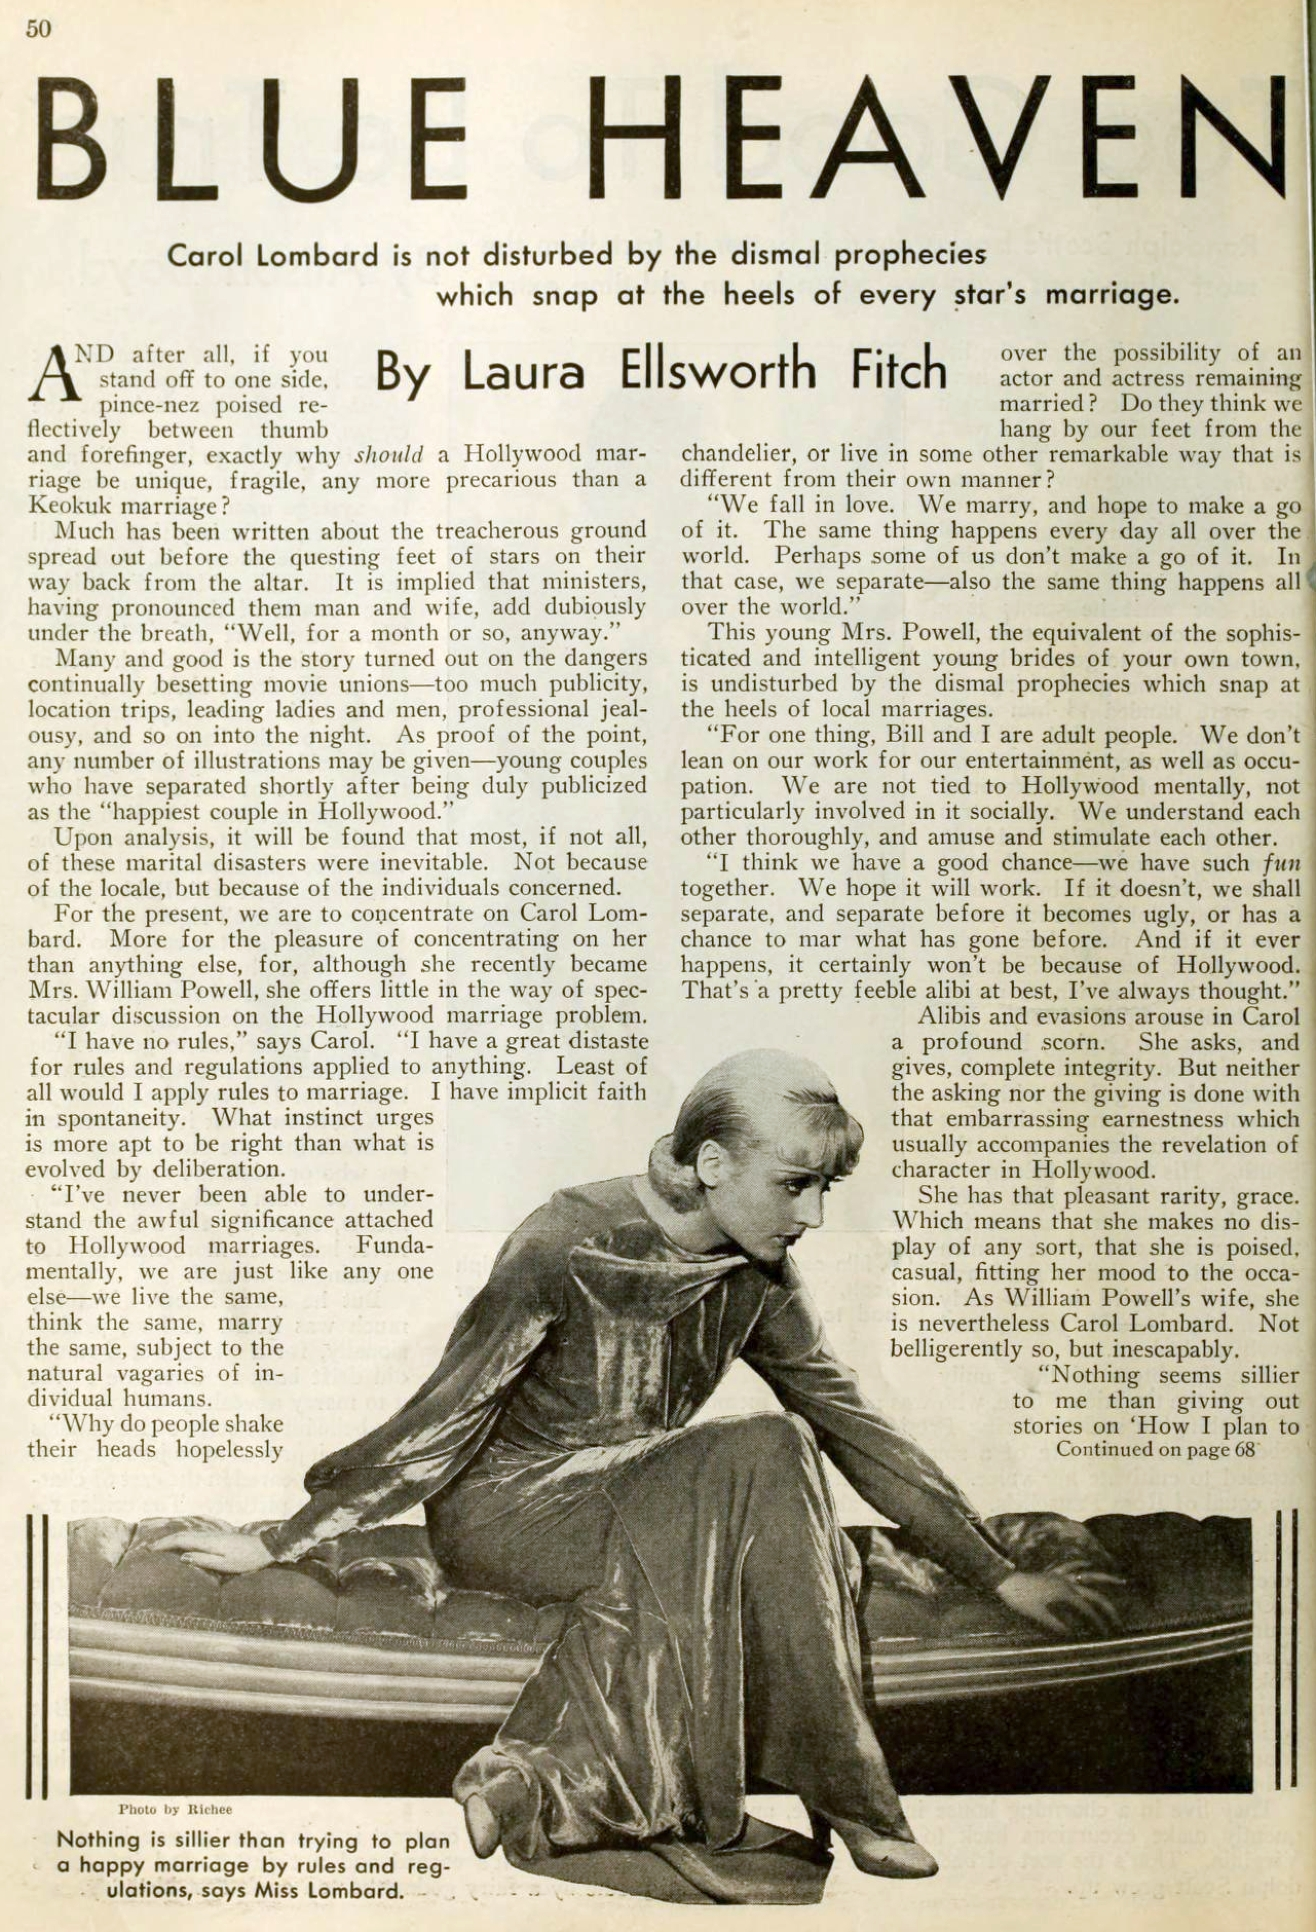 carole lombard picture play june 1932 blue heaven 00a